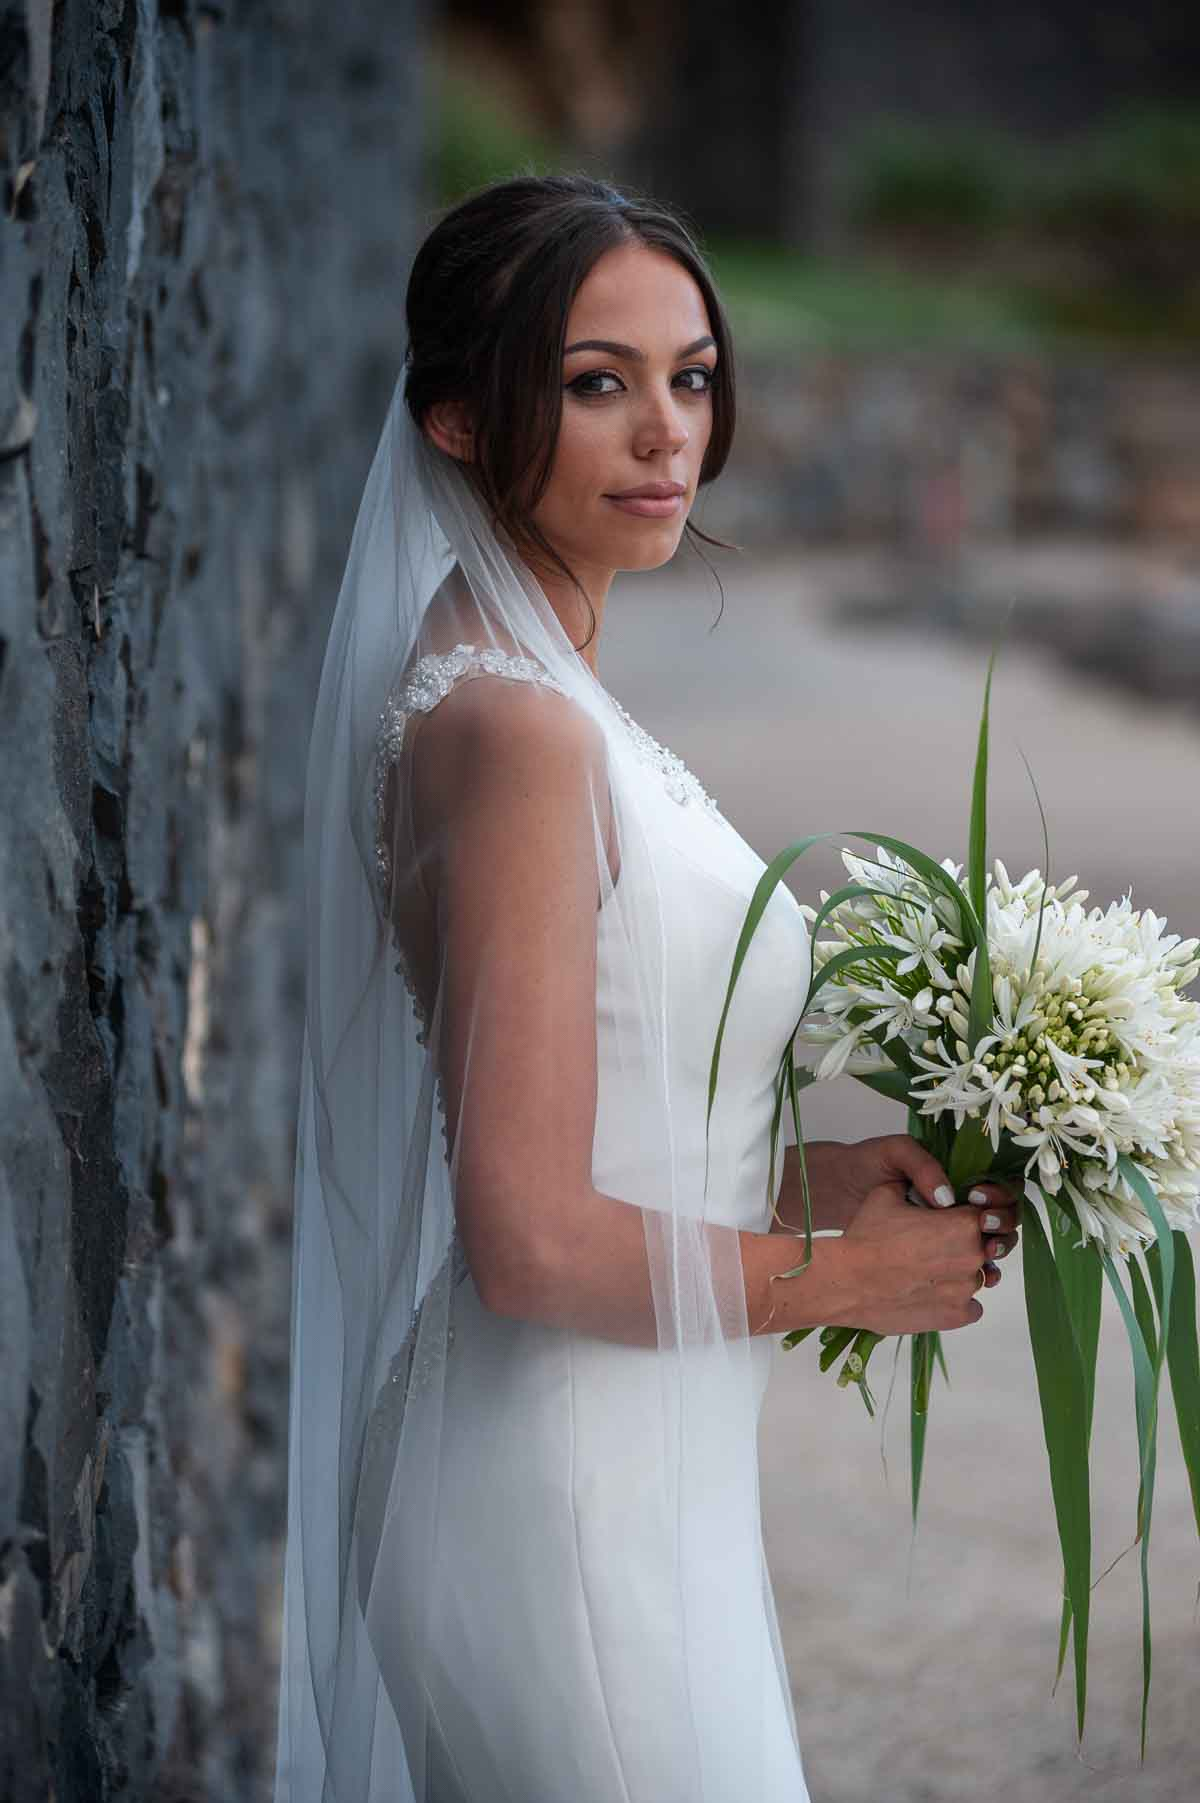 Bride with bouquet profile smiling